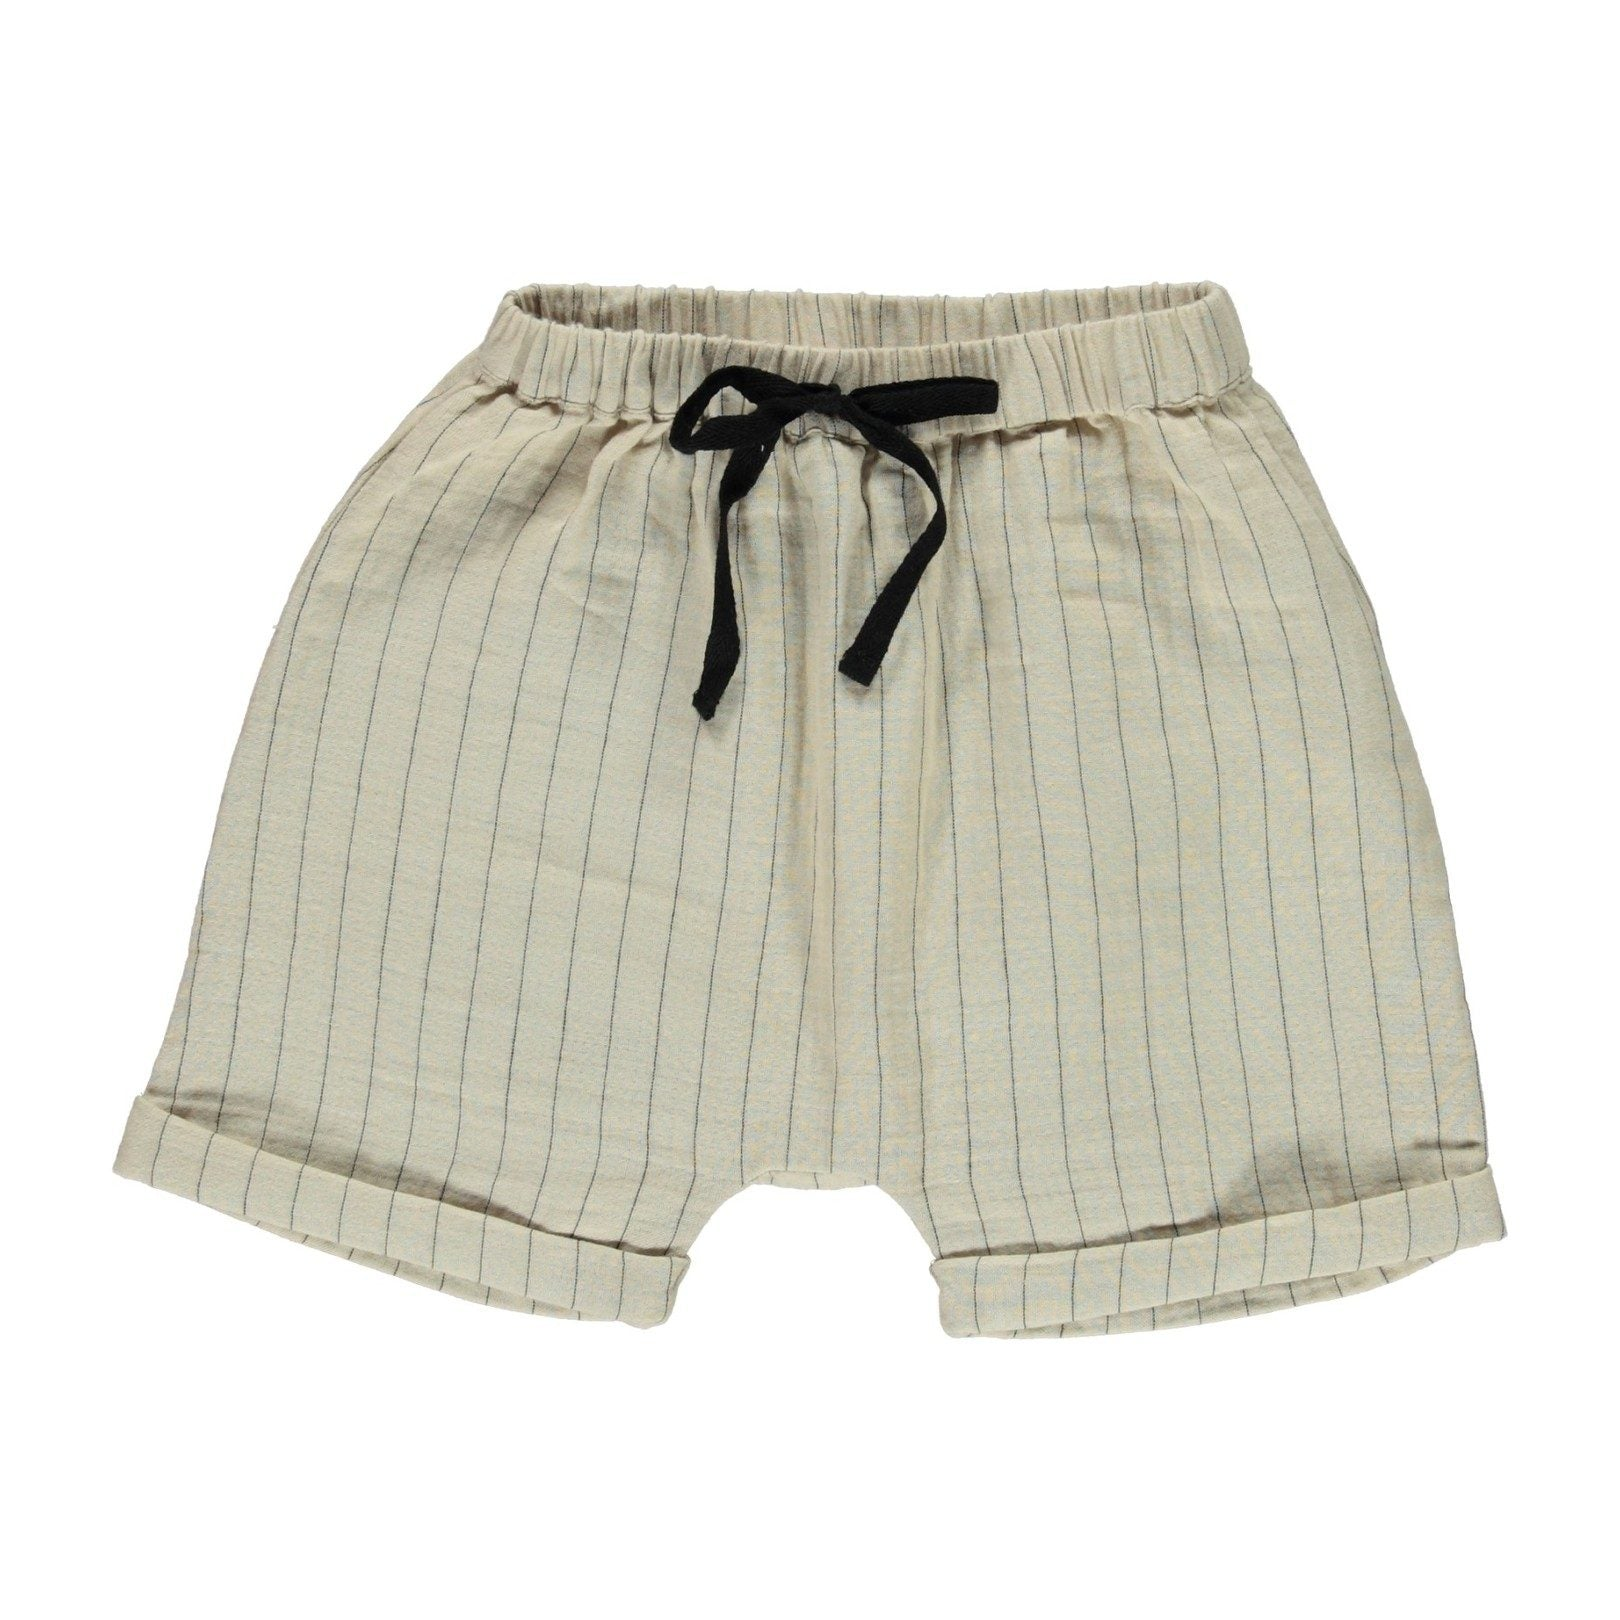 BEBE ORGANIC 'TIMO' SHORTS, STRIPE - Spinel Boutique